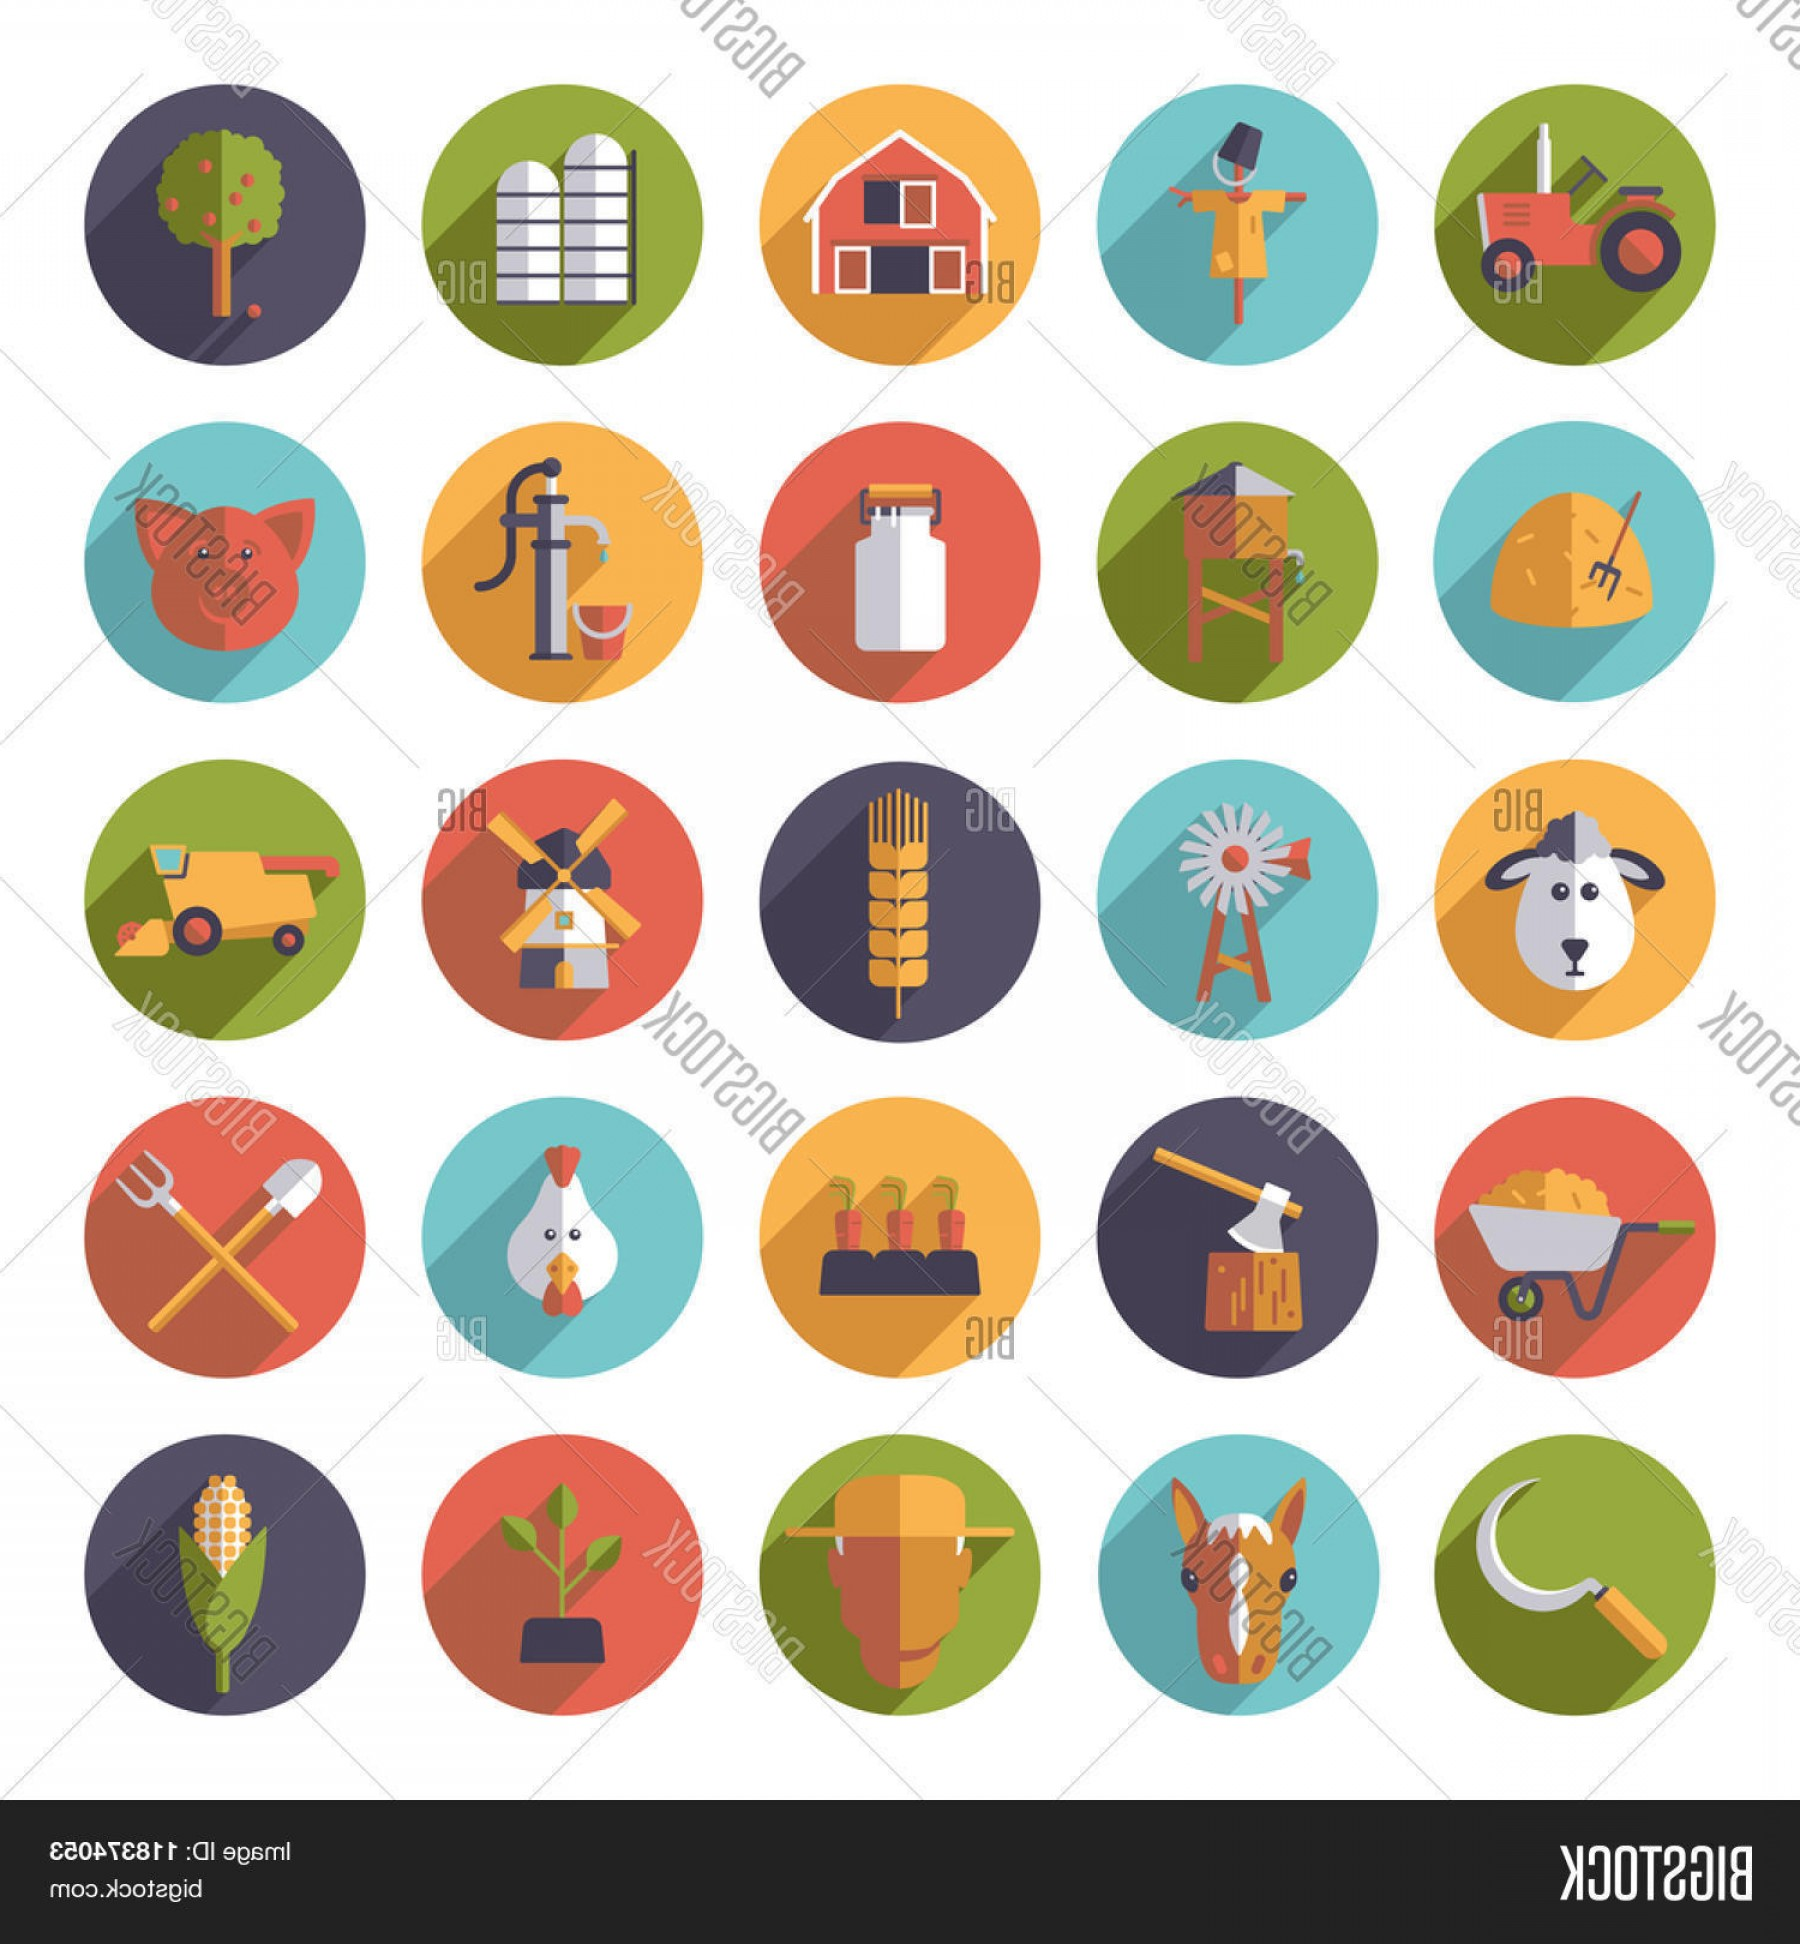 Agriculture Vector Icons: Stock Vector Flat Design Agriculture And Farming Round Icon Set Collection Of Farm And Agriculture Vector Icons In Circles